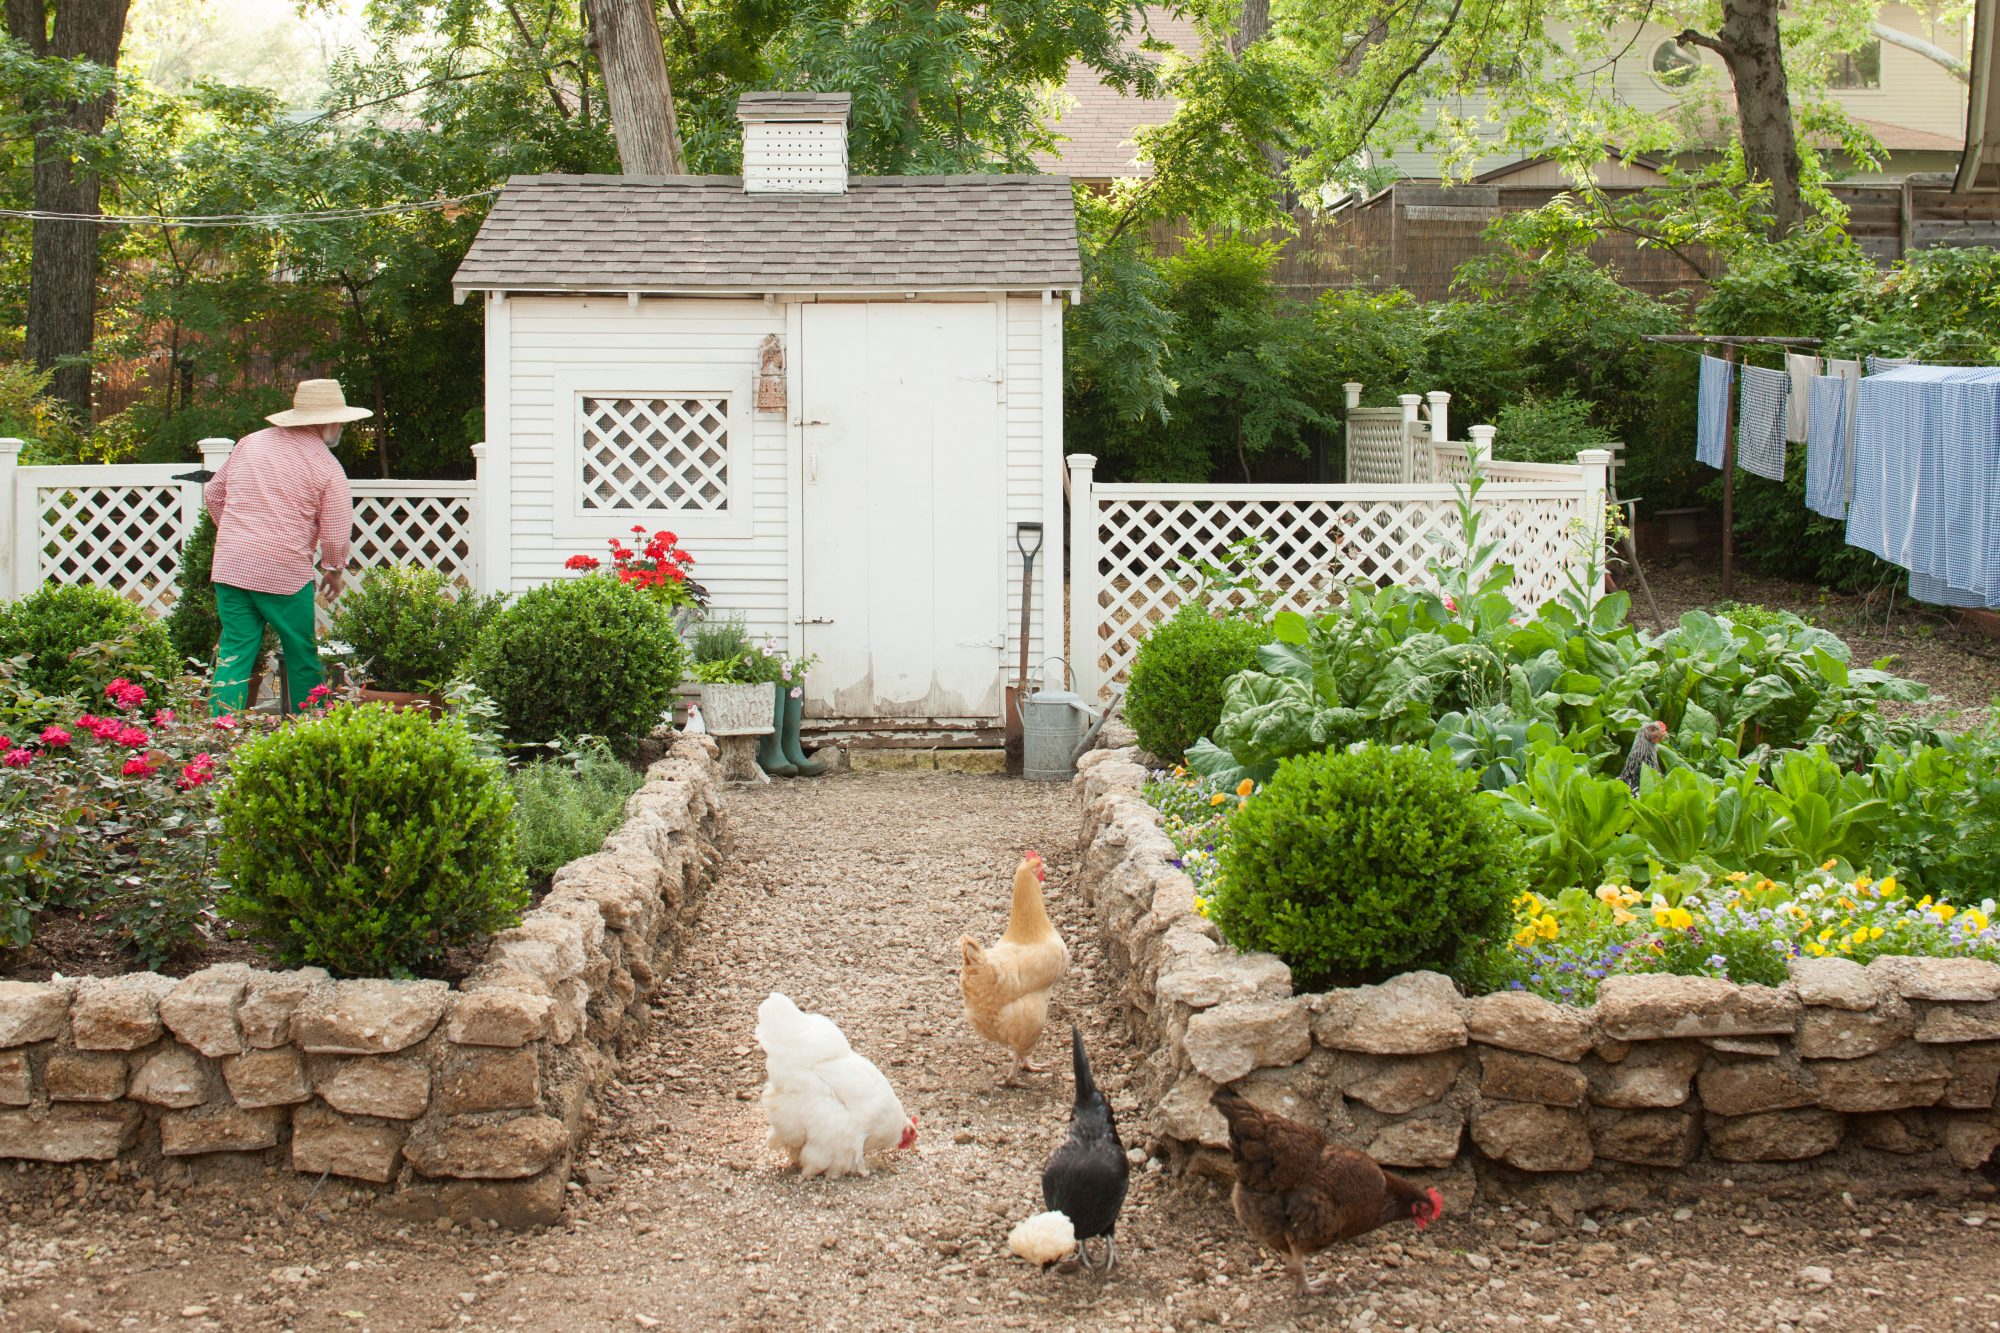 Chickens grazing while walking in front of chicken coop in garden; man (Jimmie Henslee) in background.